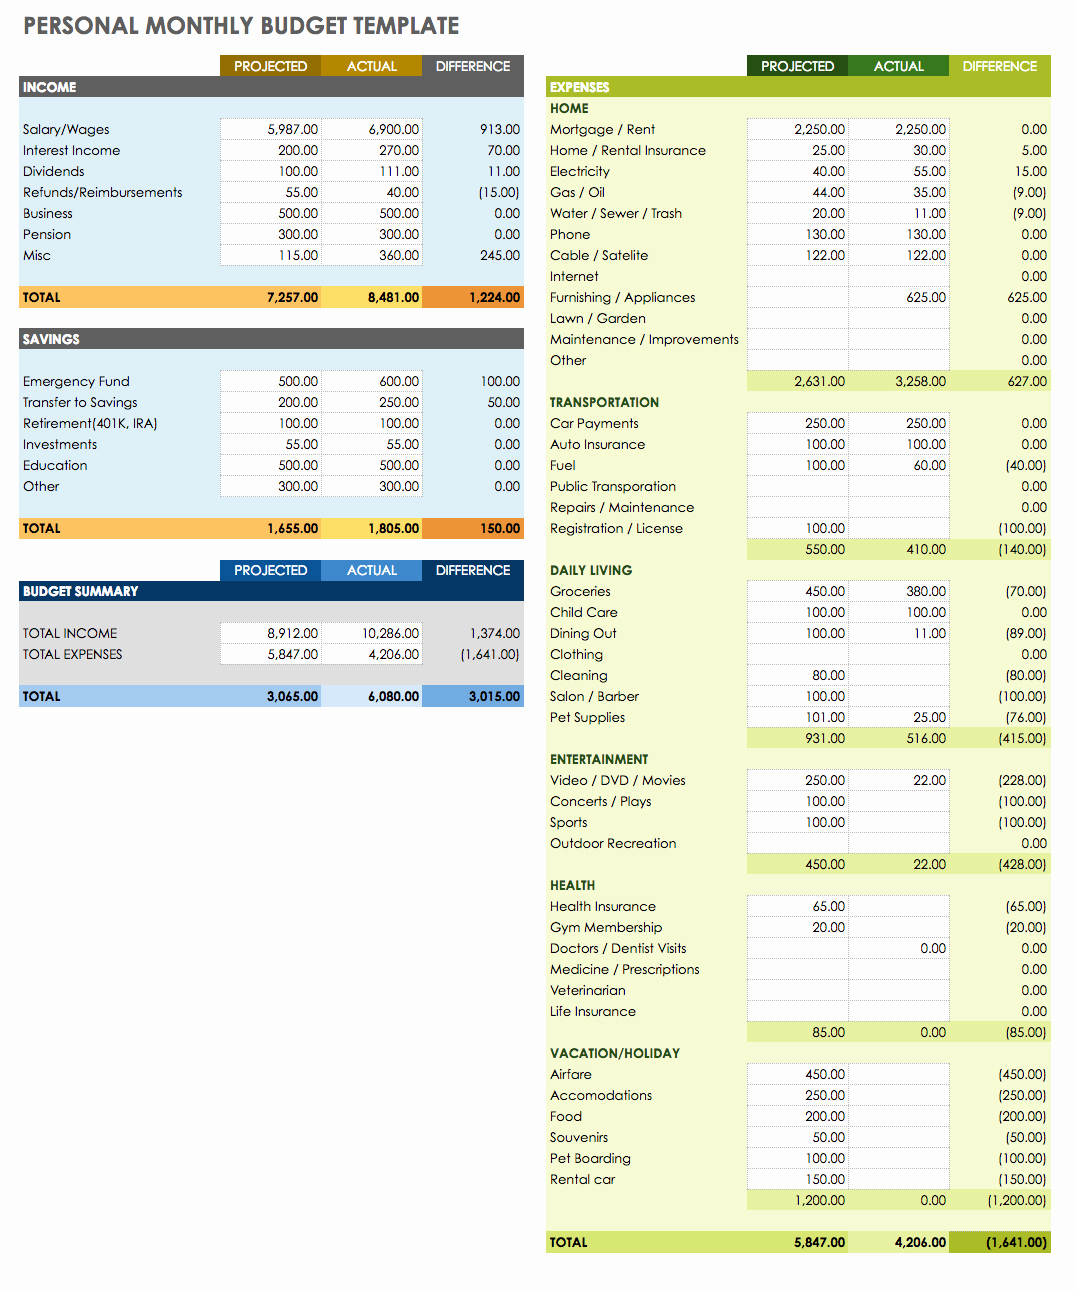 Monthly Budget Spreadsheet Template Lovely Free Google Docs and Spreadsheet Templates Smartsheet